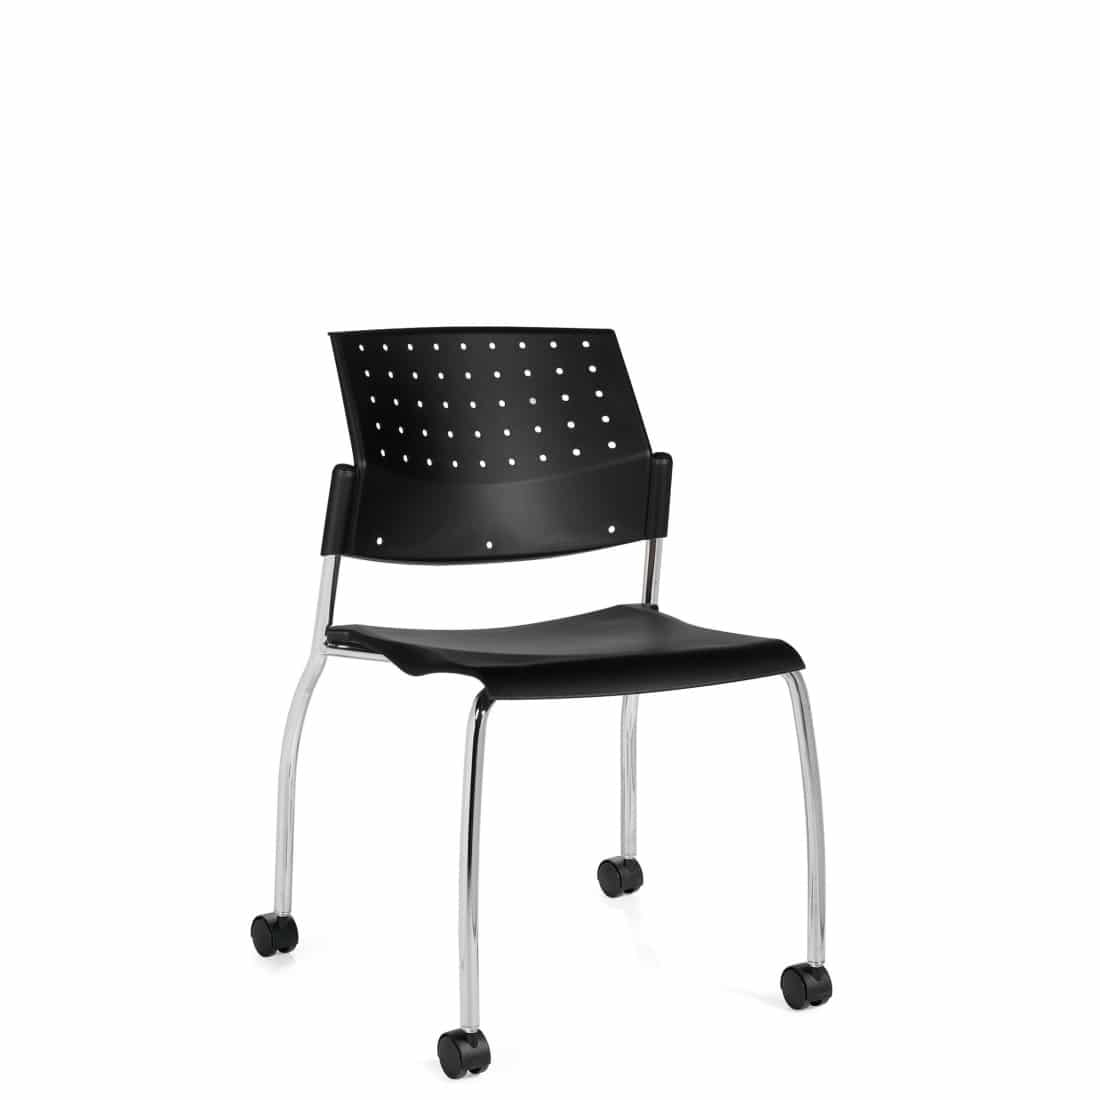 Armless Chair, Black Polypropylene Seat & Back, Casters and Chrome Frame (6577)